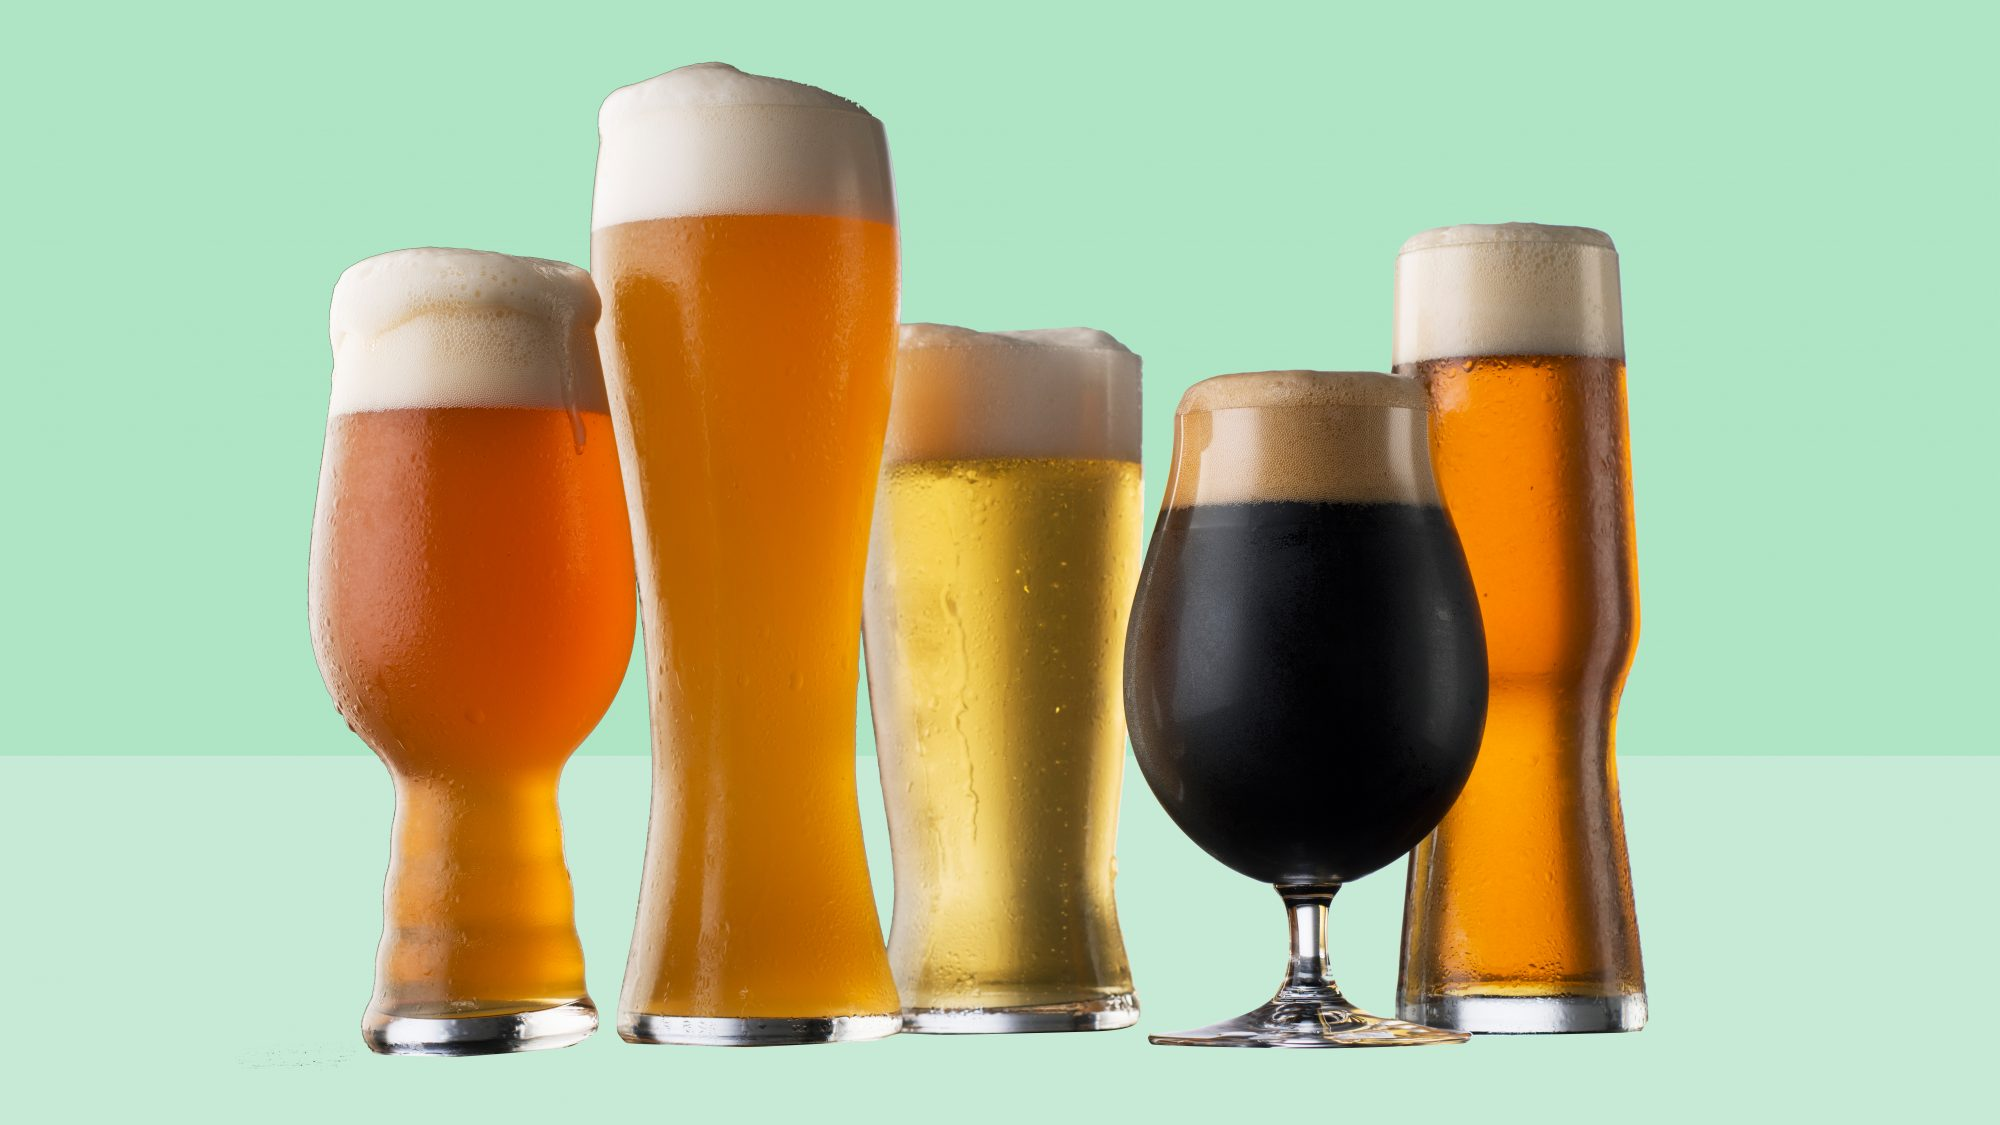 A Wine Drinker's Guide to Beer and Cider